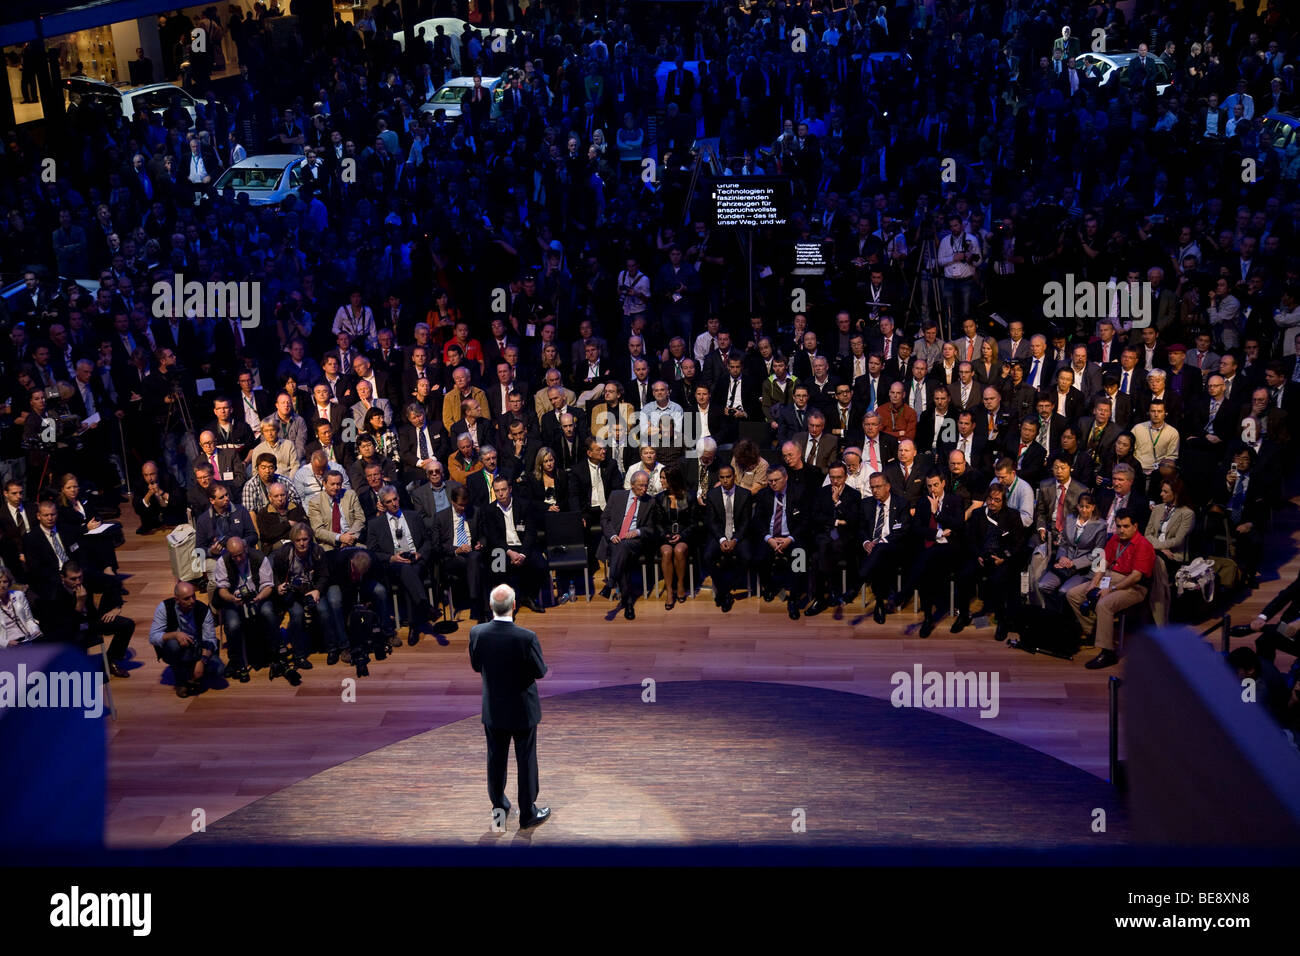 Dieter Zetsche talks at the Mercedes press launch at a European motor show - Stock Image